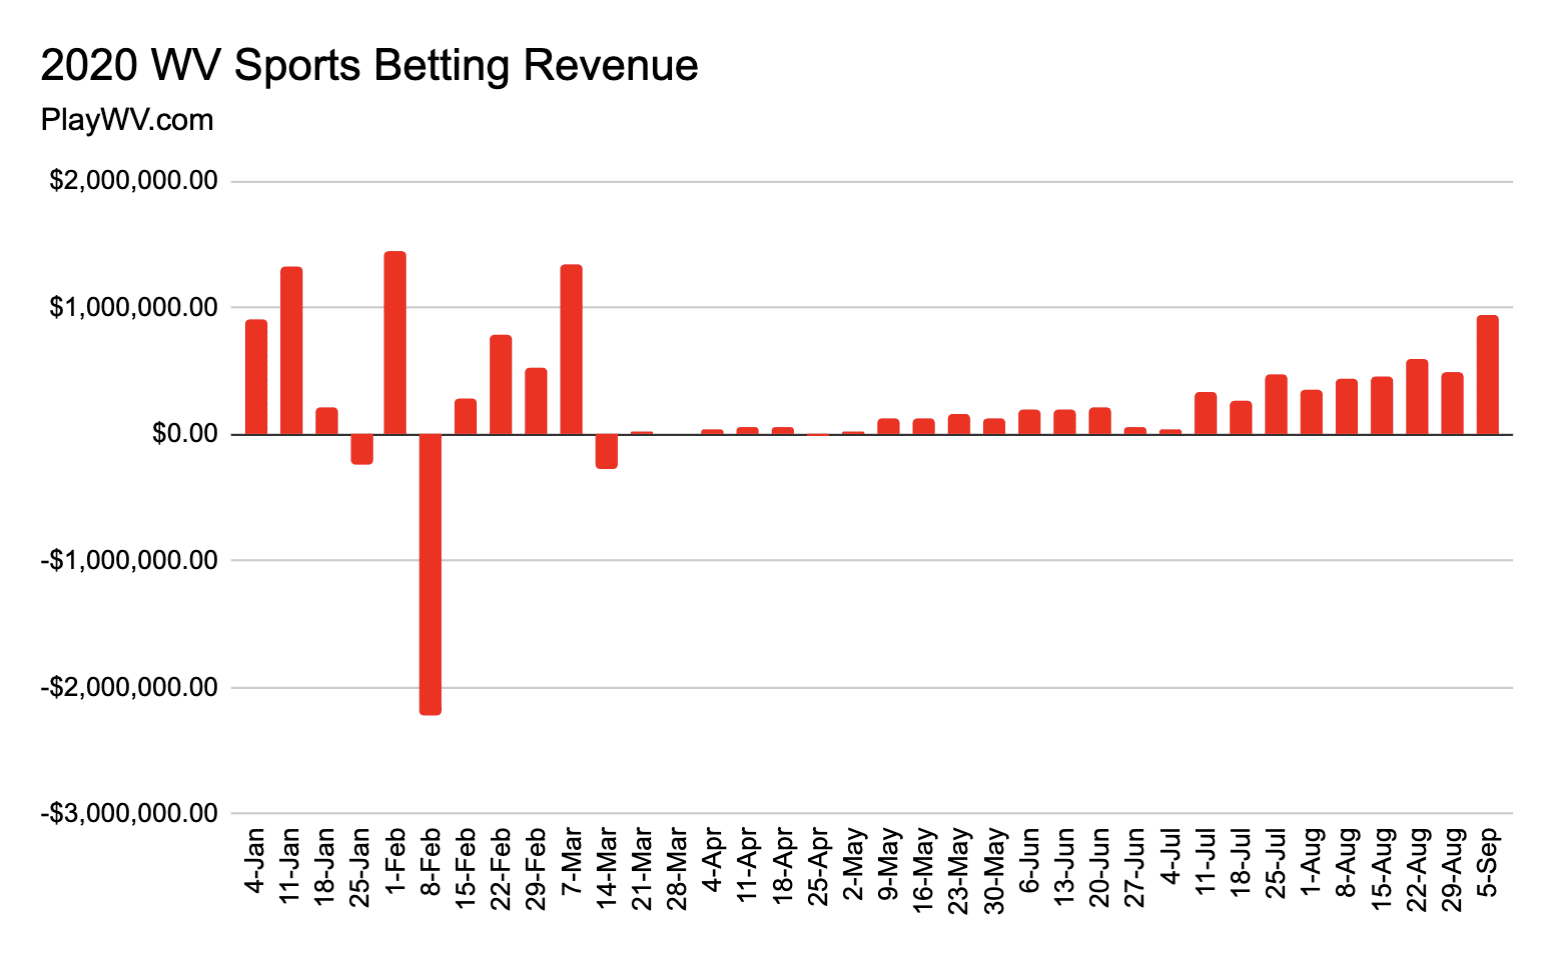 WV sports betting revenue through 9.5.20